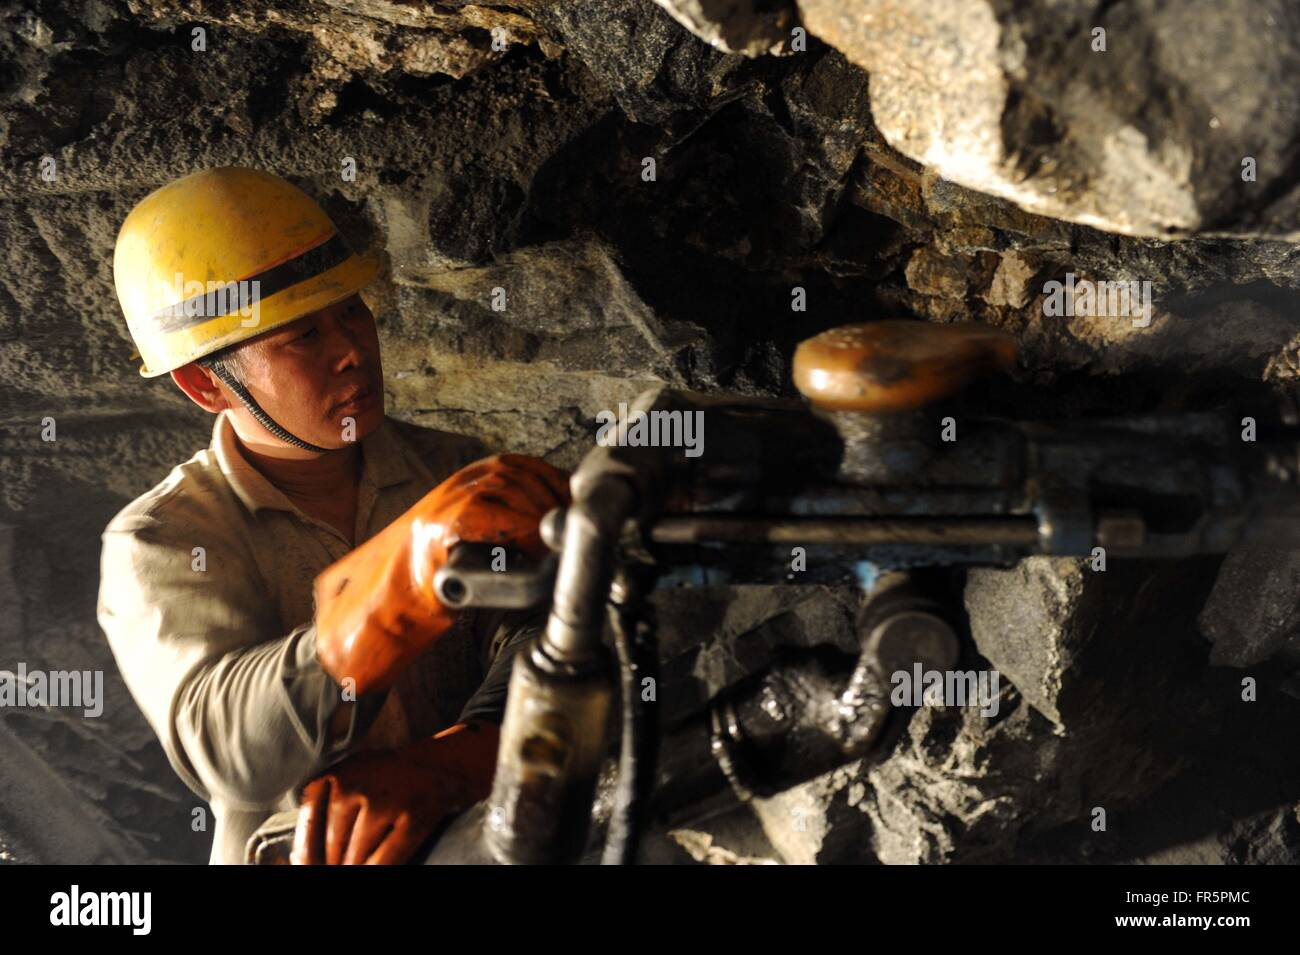 (160321) -- NYINGCHI, March 21, 2016 (Xinhua) -- A worker carries out drilling operation during construction of - Stock Image